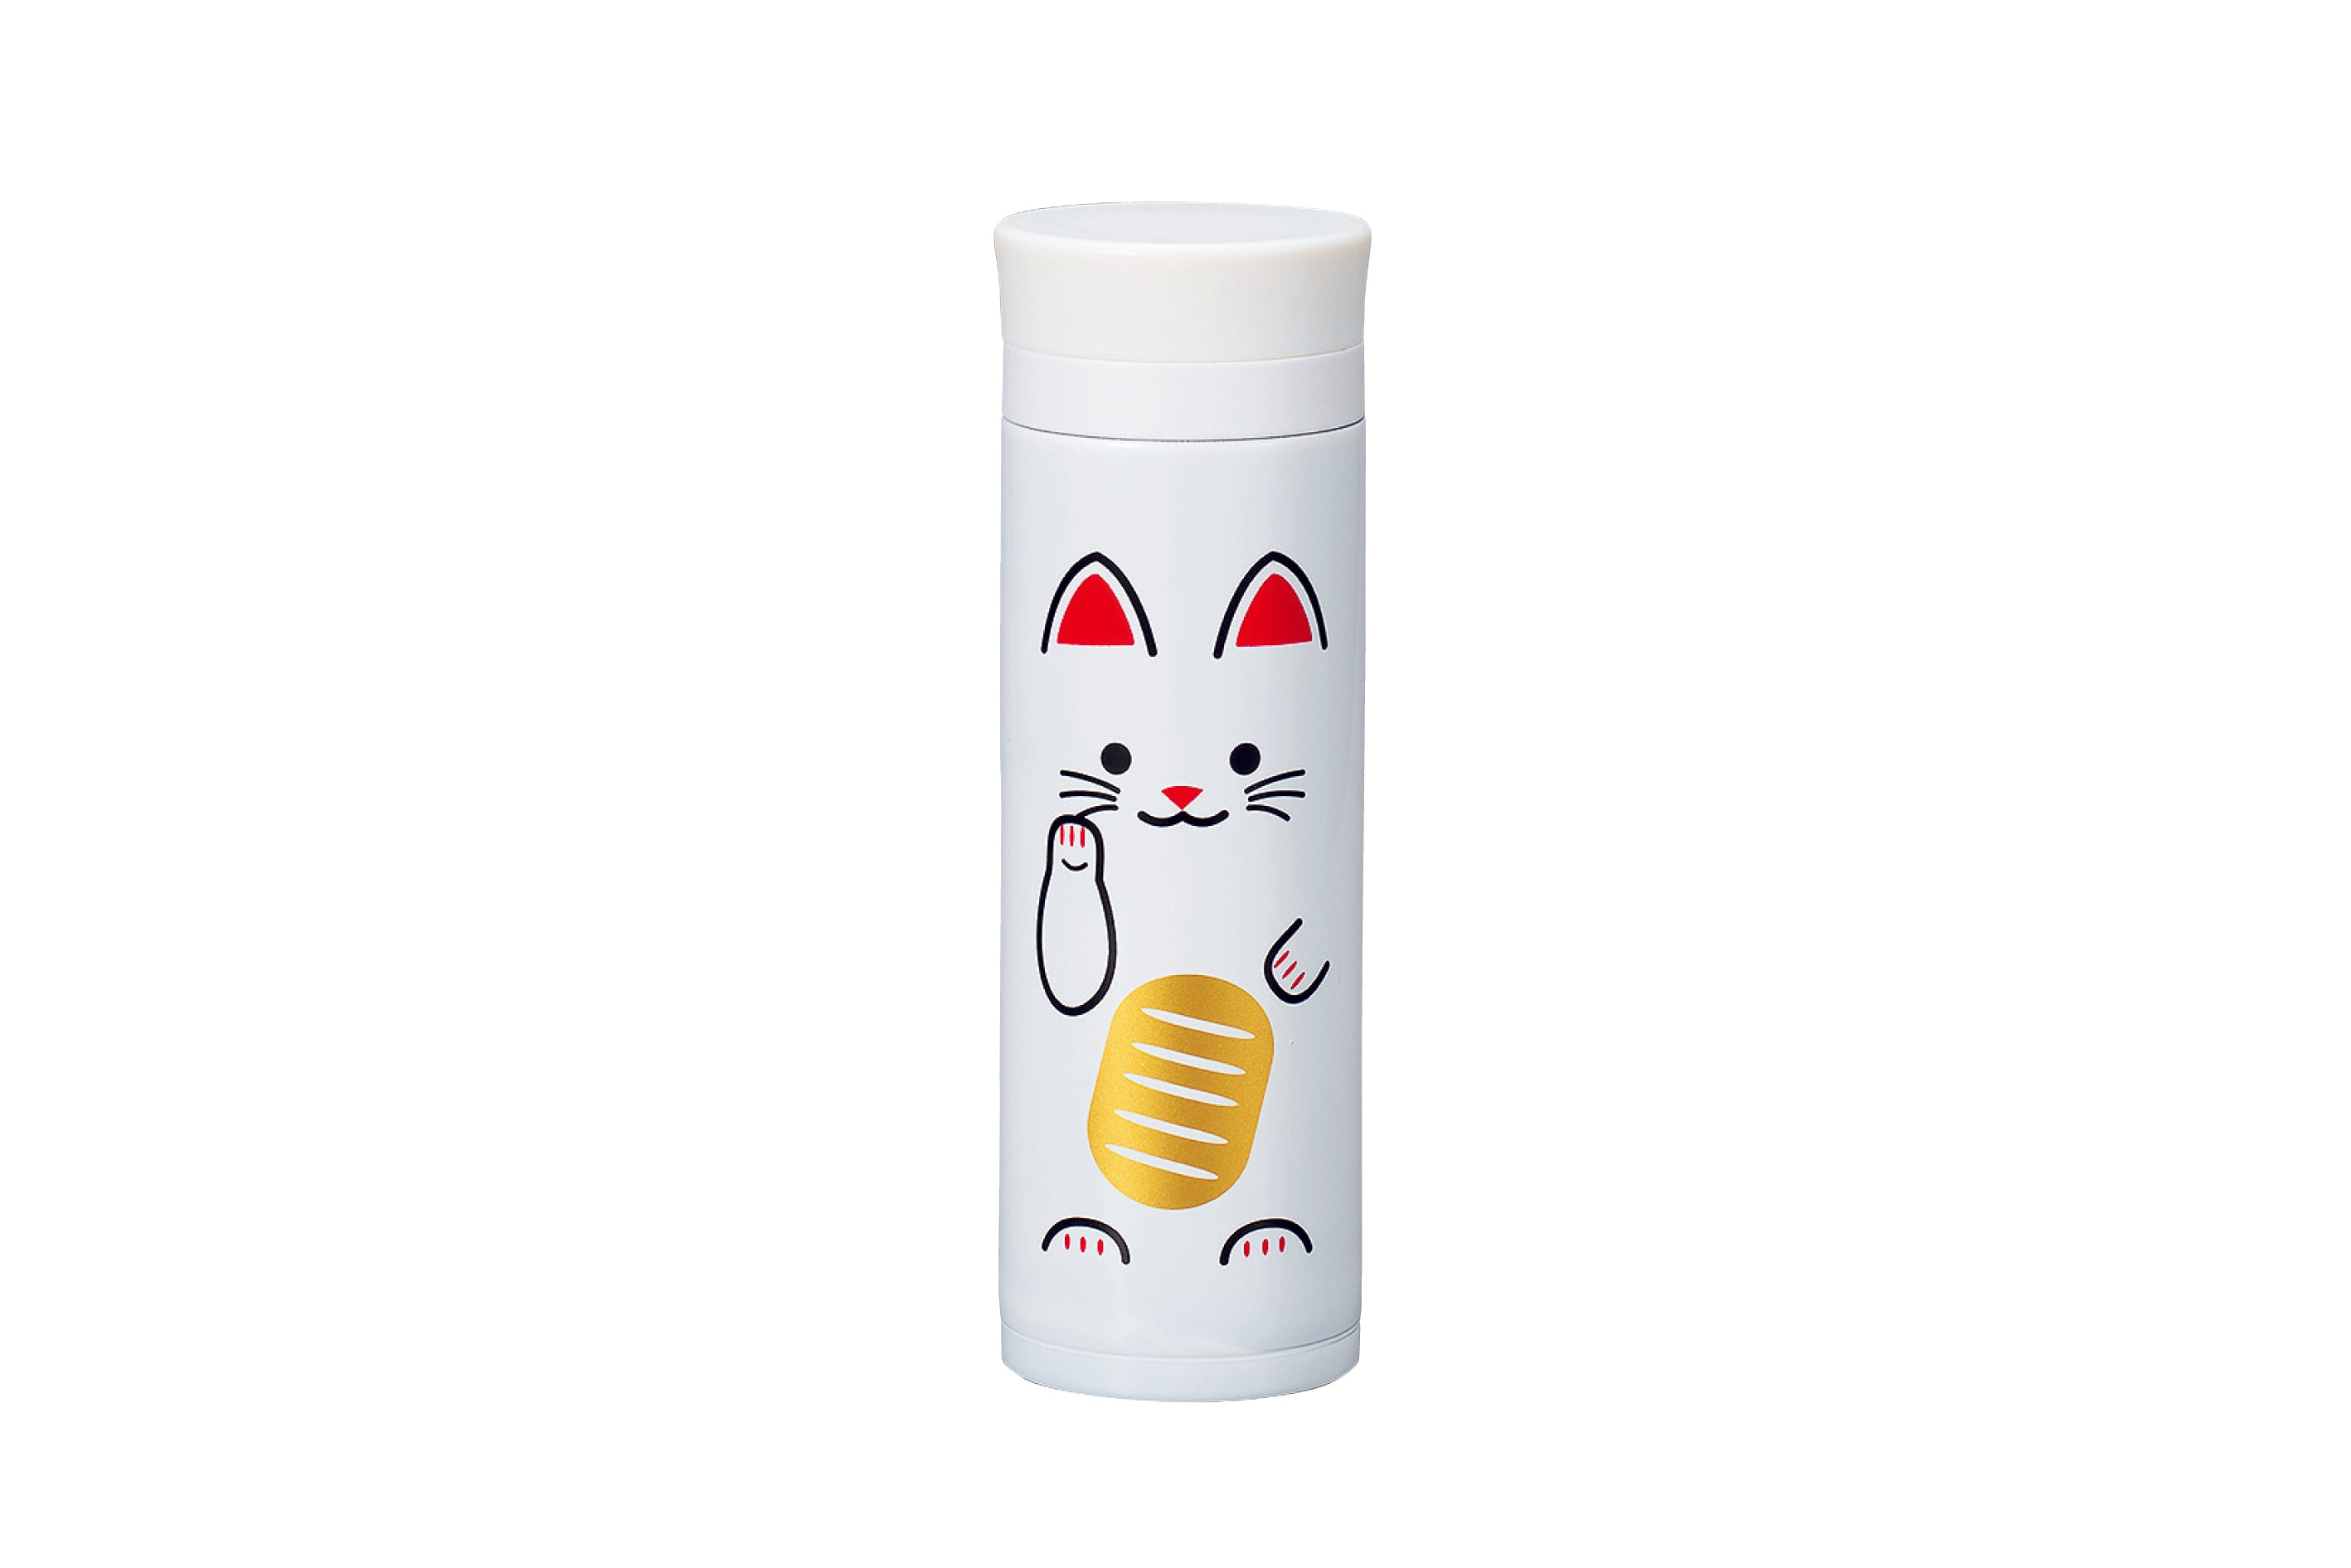 Manekineko Stainless Steel Bottle | White by Hakoya - Bento&co Japanese Bento Lunch Boxes and Kitchenware Specialists